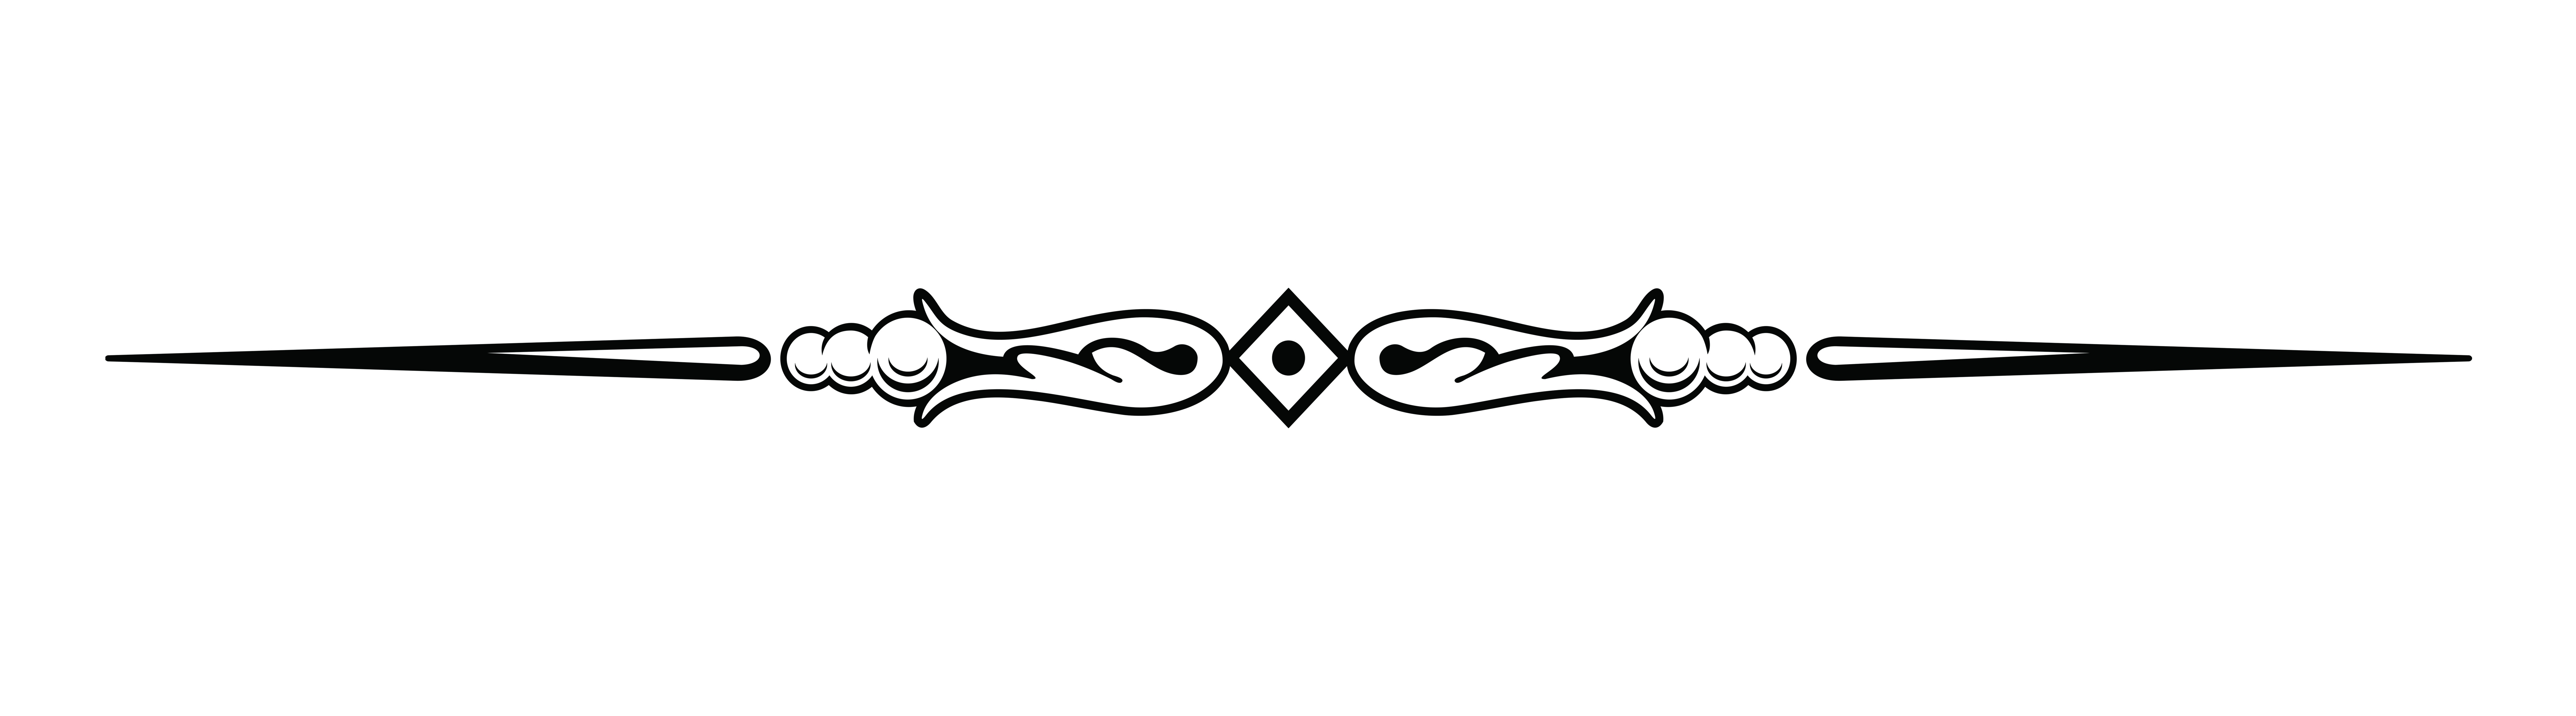 Filigree divider cliparts download. Free clipart lines